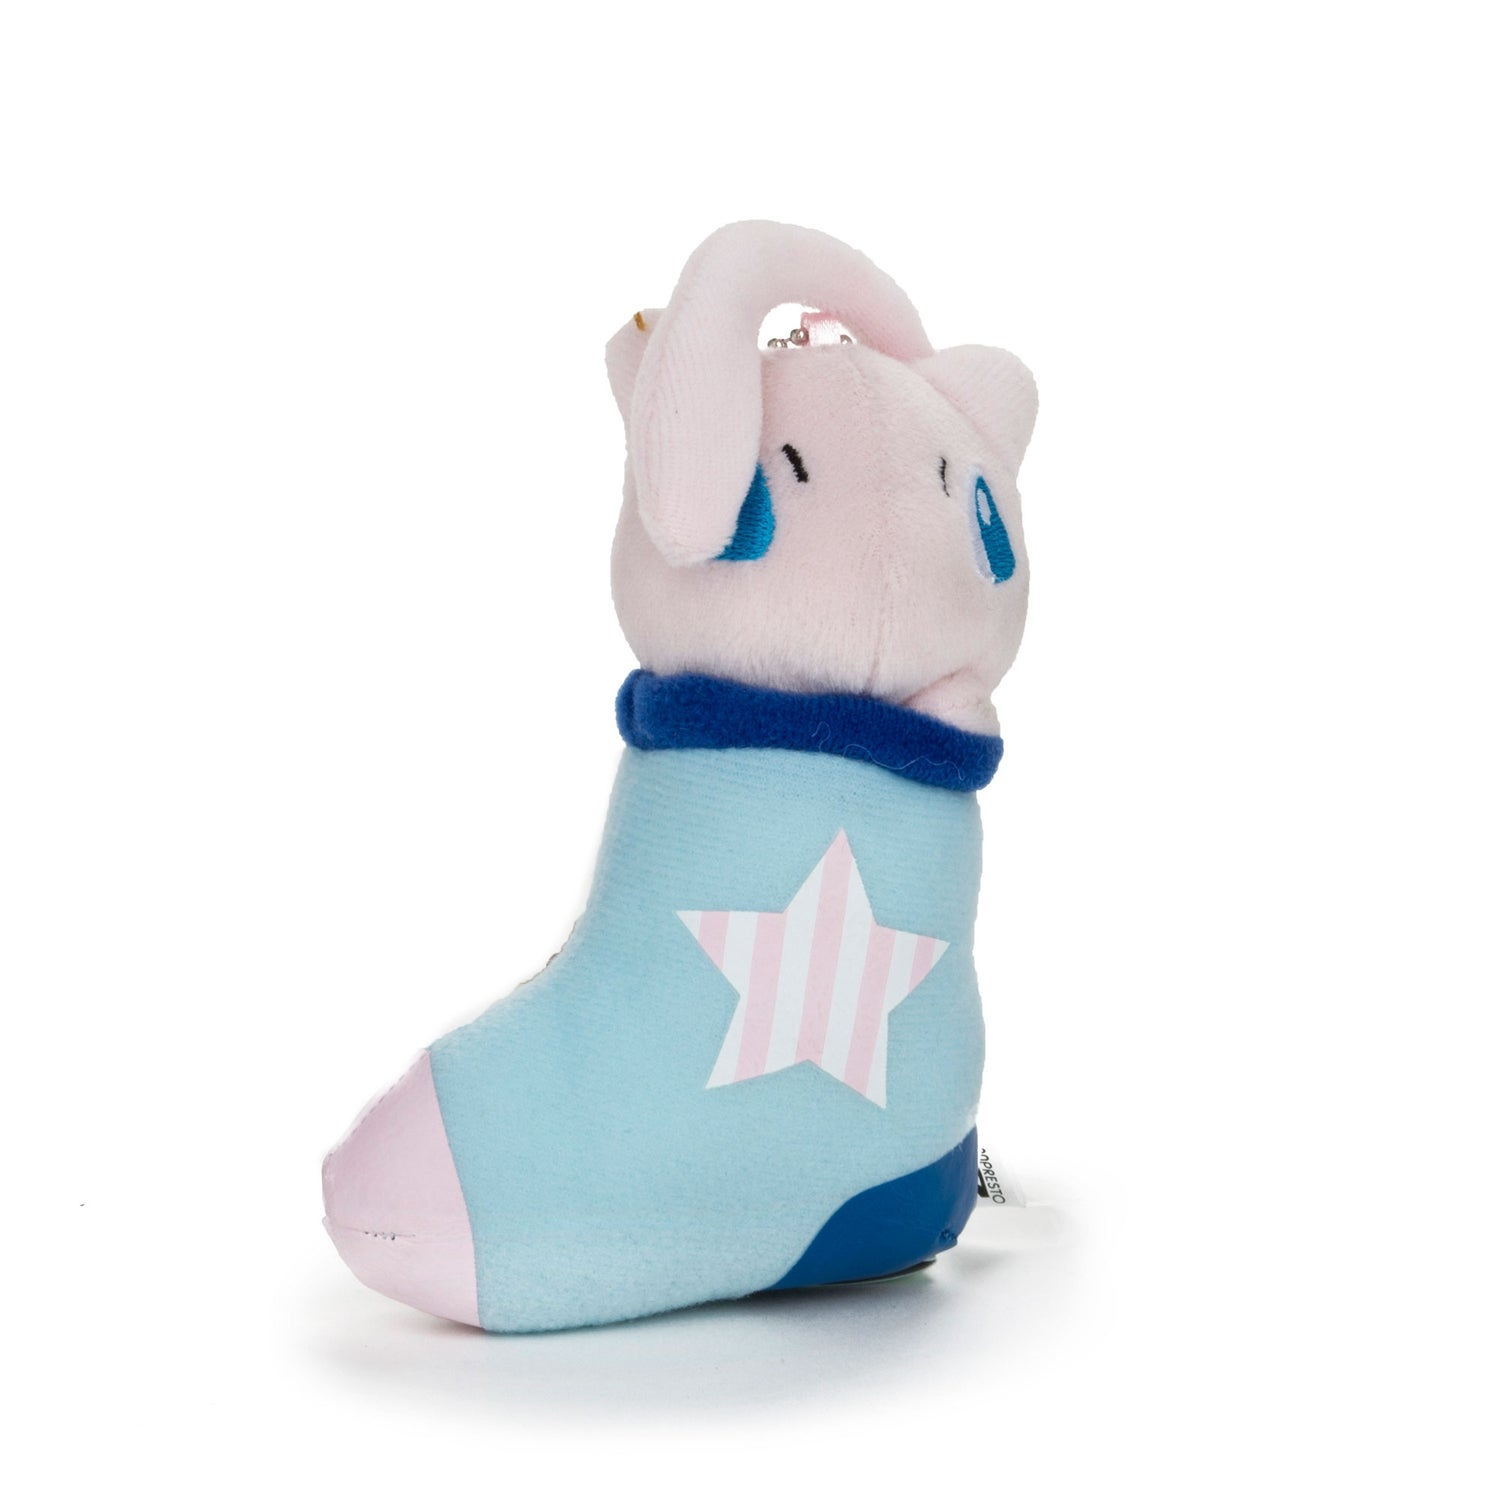 Banpresto Pokemon Stocking Plush Charms Mew, Blue/Pink